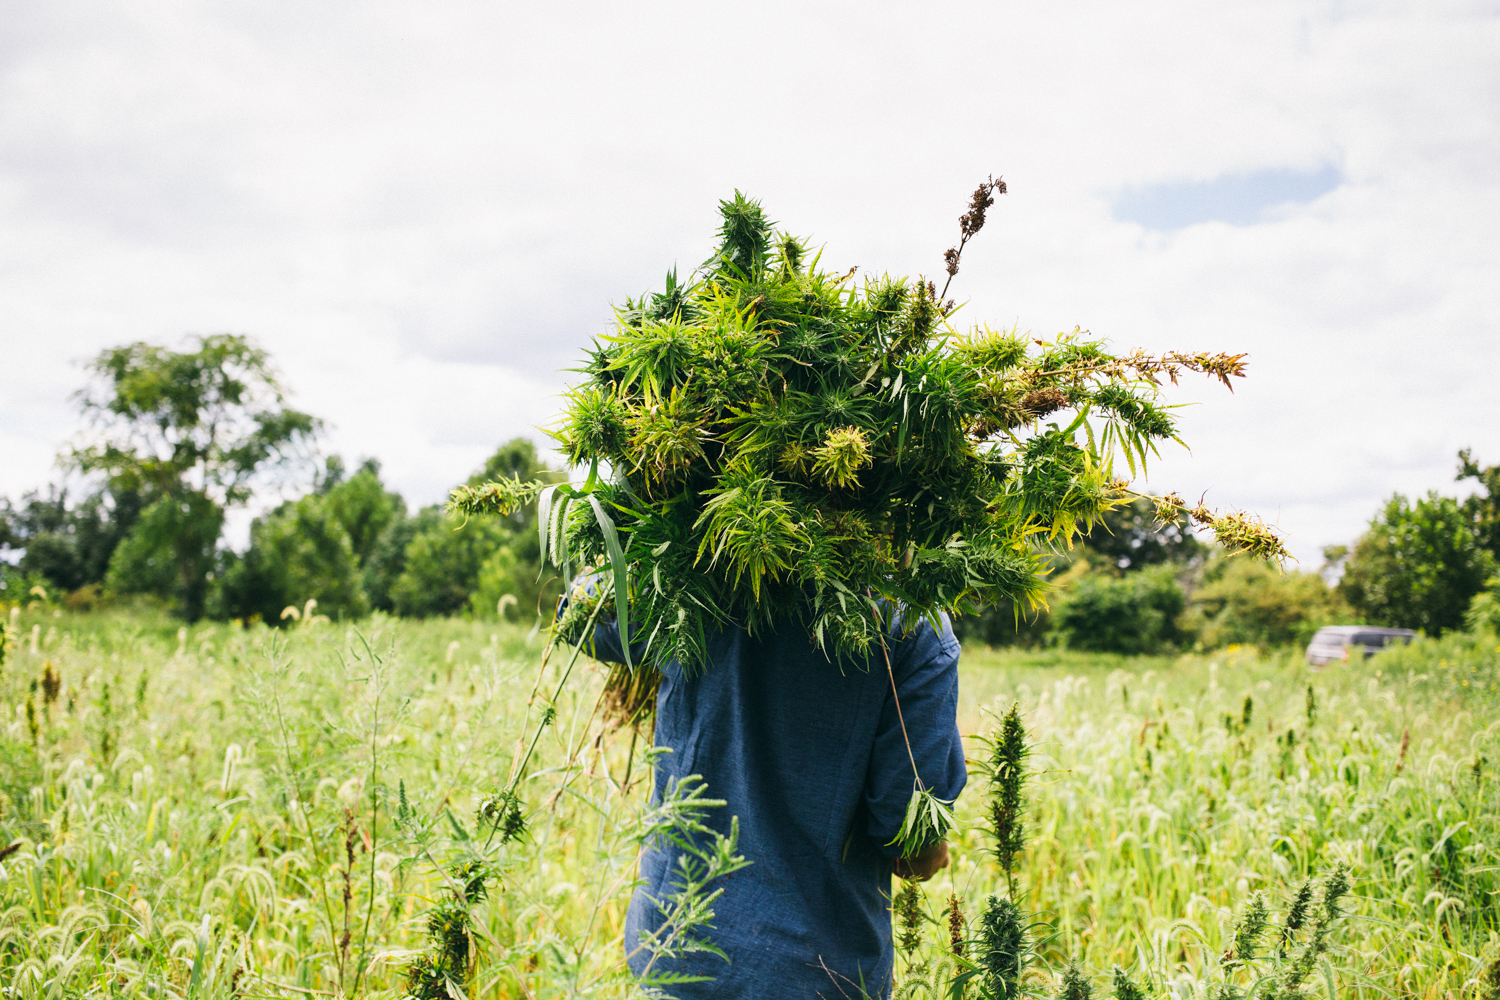 Hemp_For_Liberty_Stills_D.Hedden-14.jpg